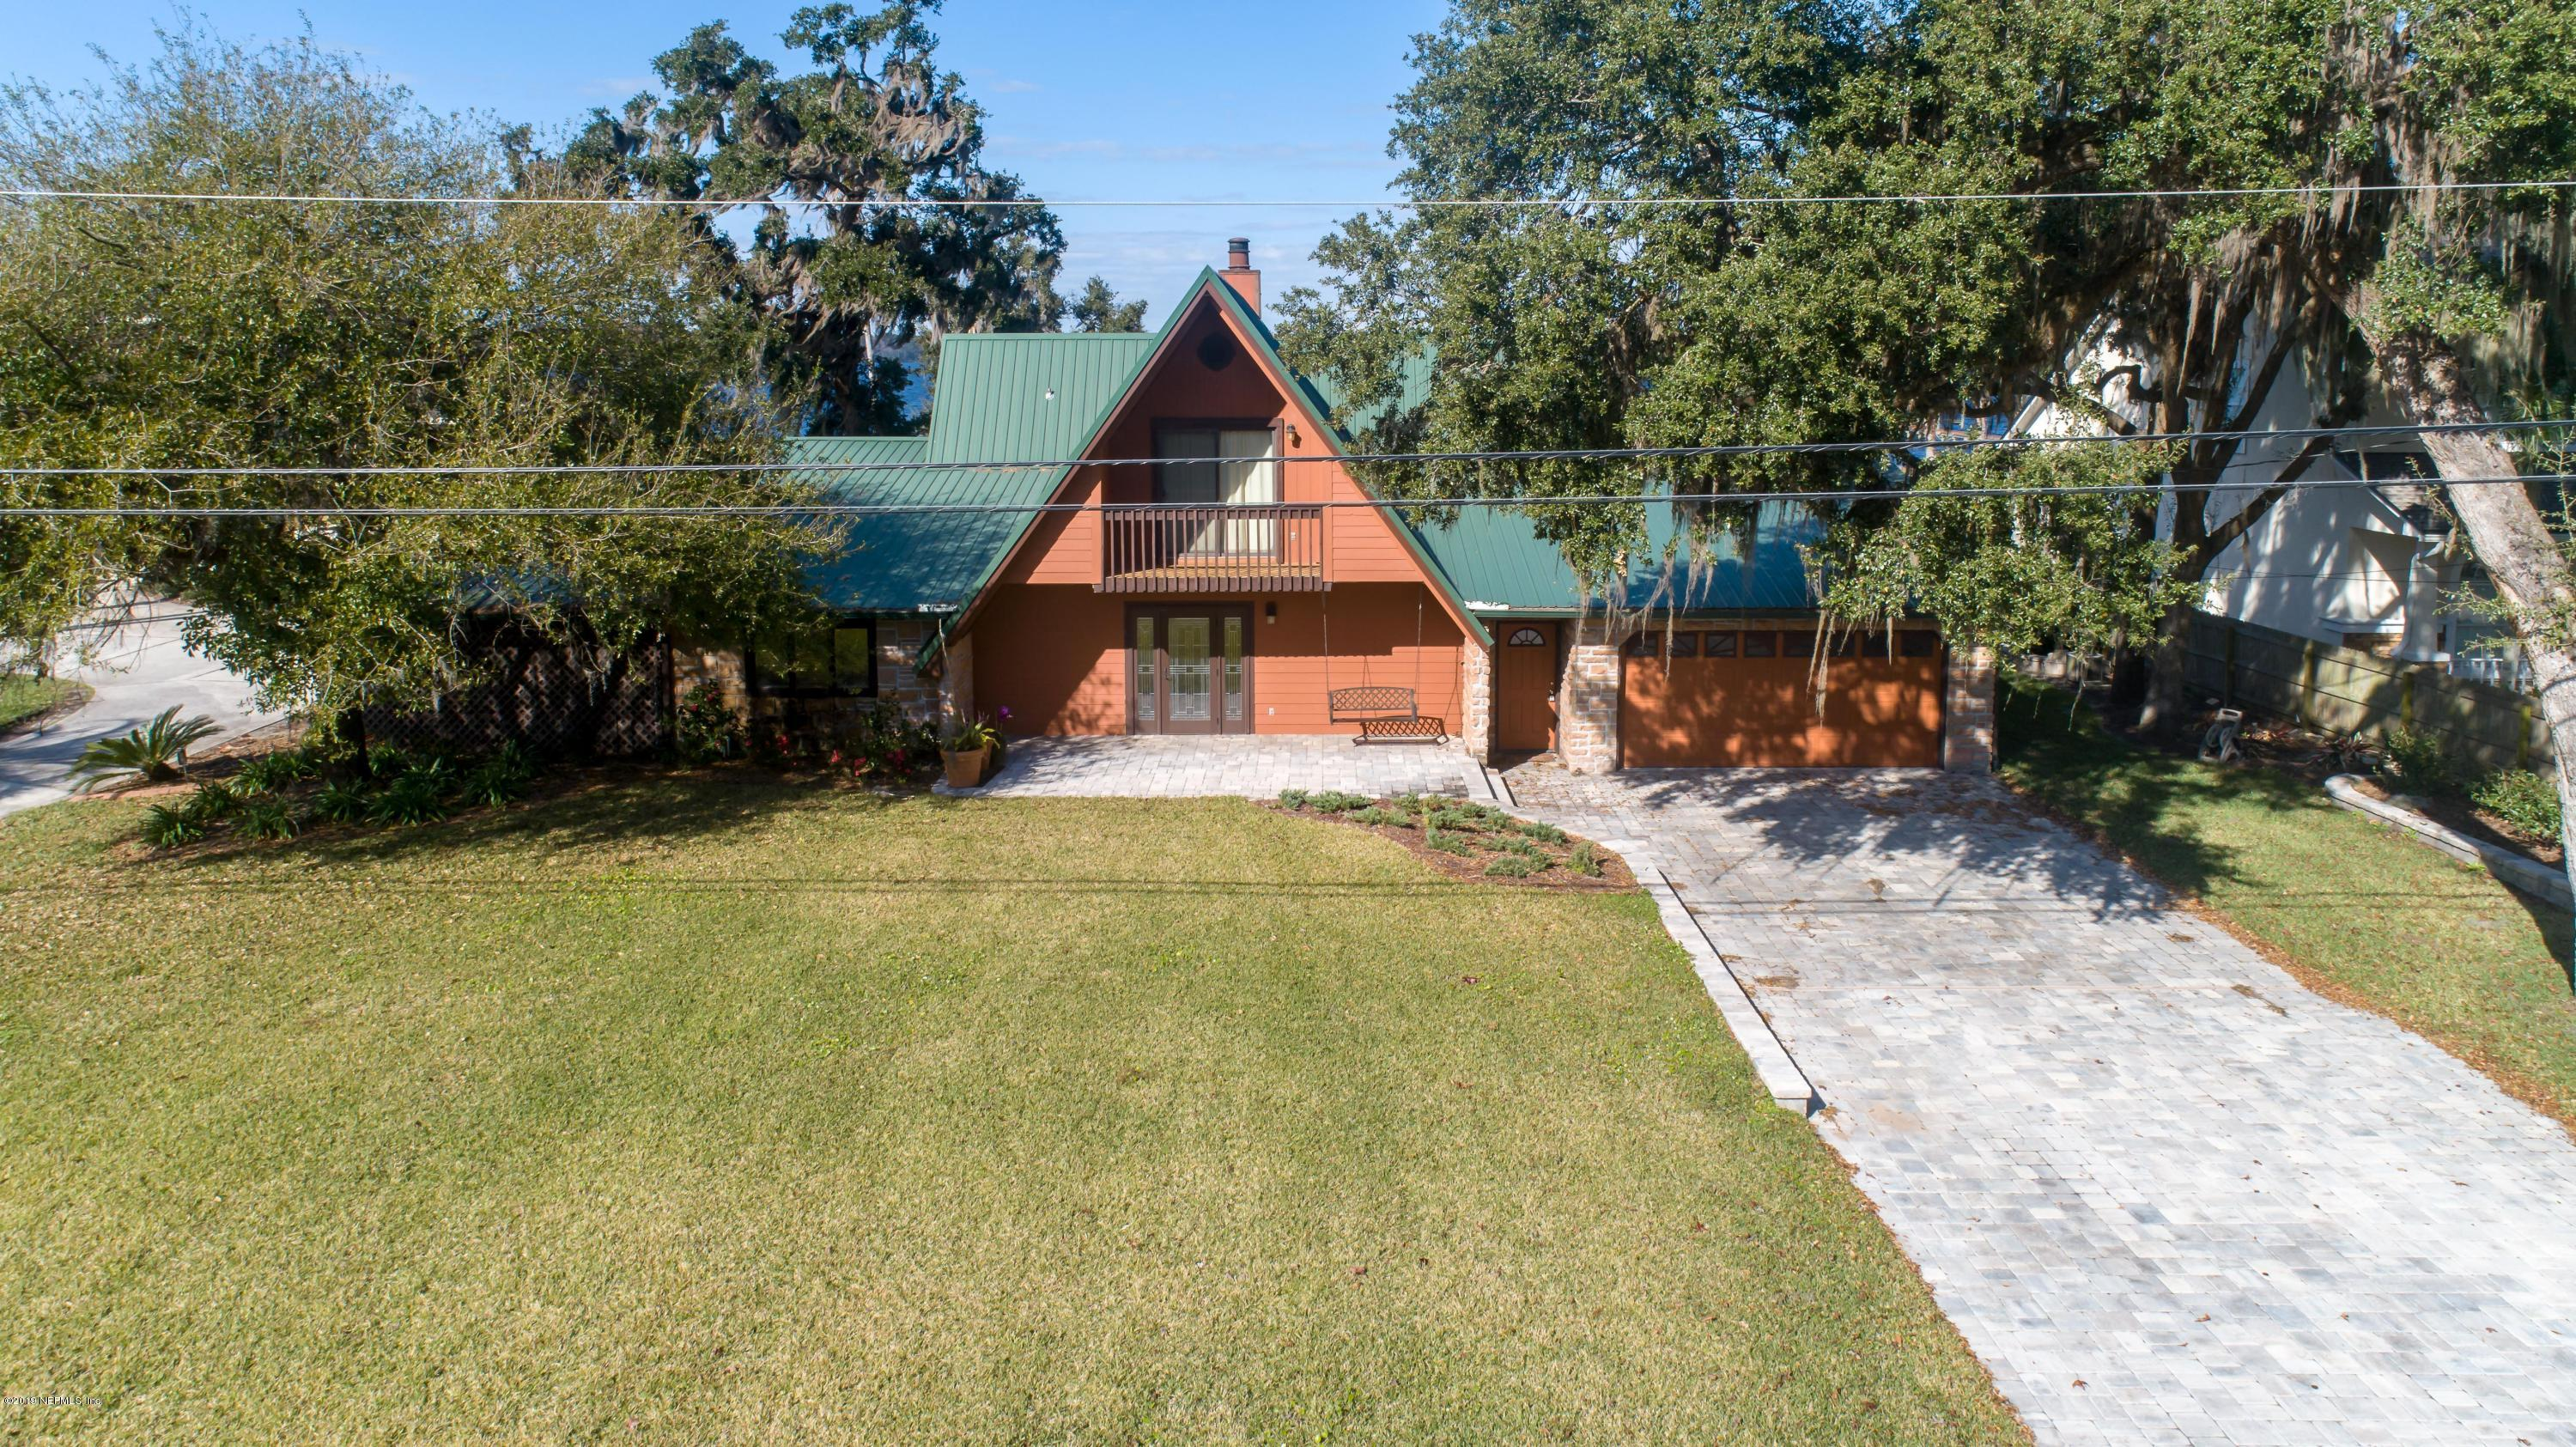 2135 LAKESHORE, FLEMING ISLAND, FLORIDA 32003-7761, 5 Bedrooms Bedrooms, ,4 BathroomsBathrooms,Residential - single family,For sale,LAKESHORE,972358